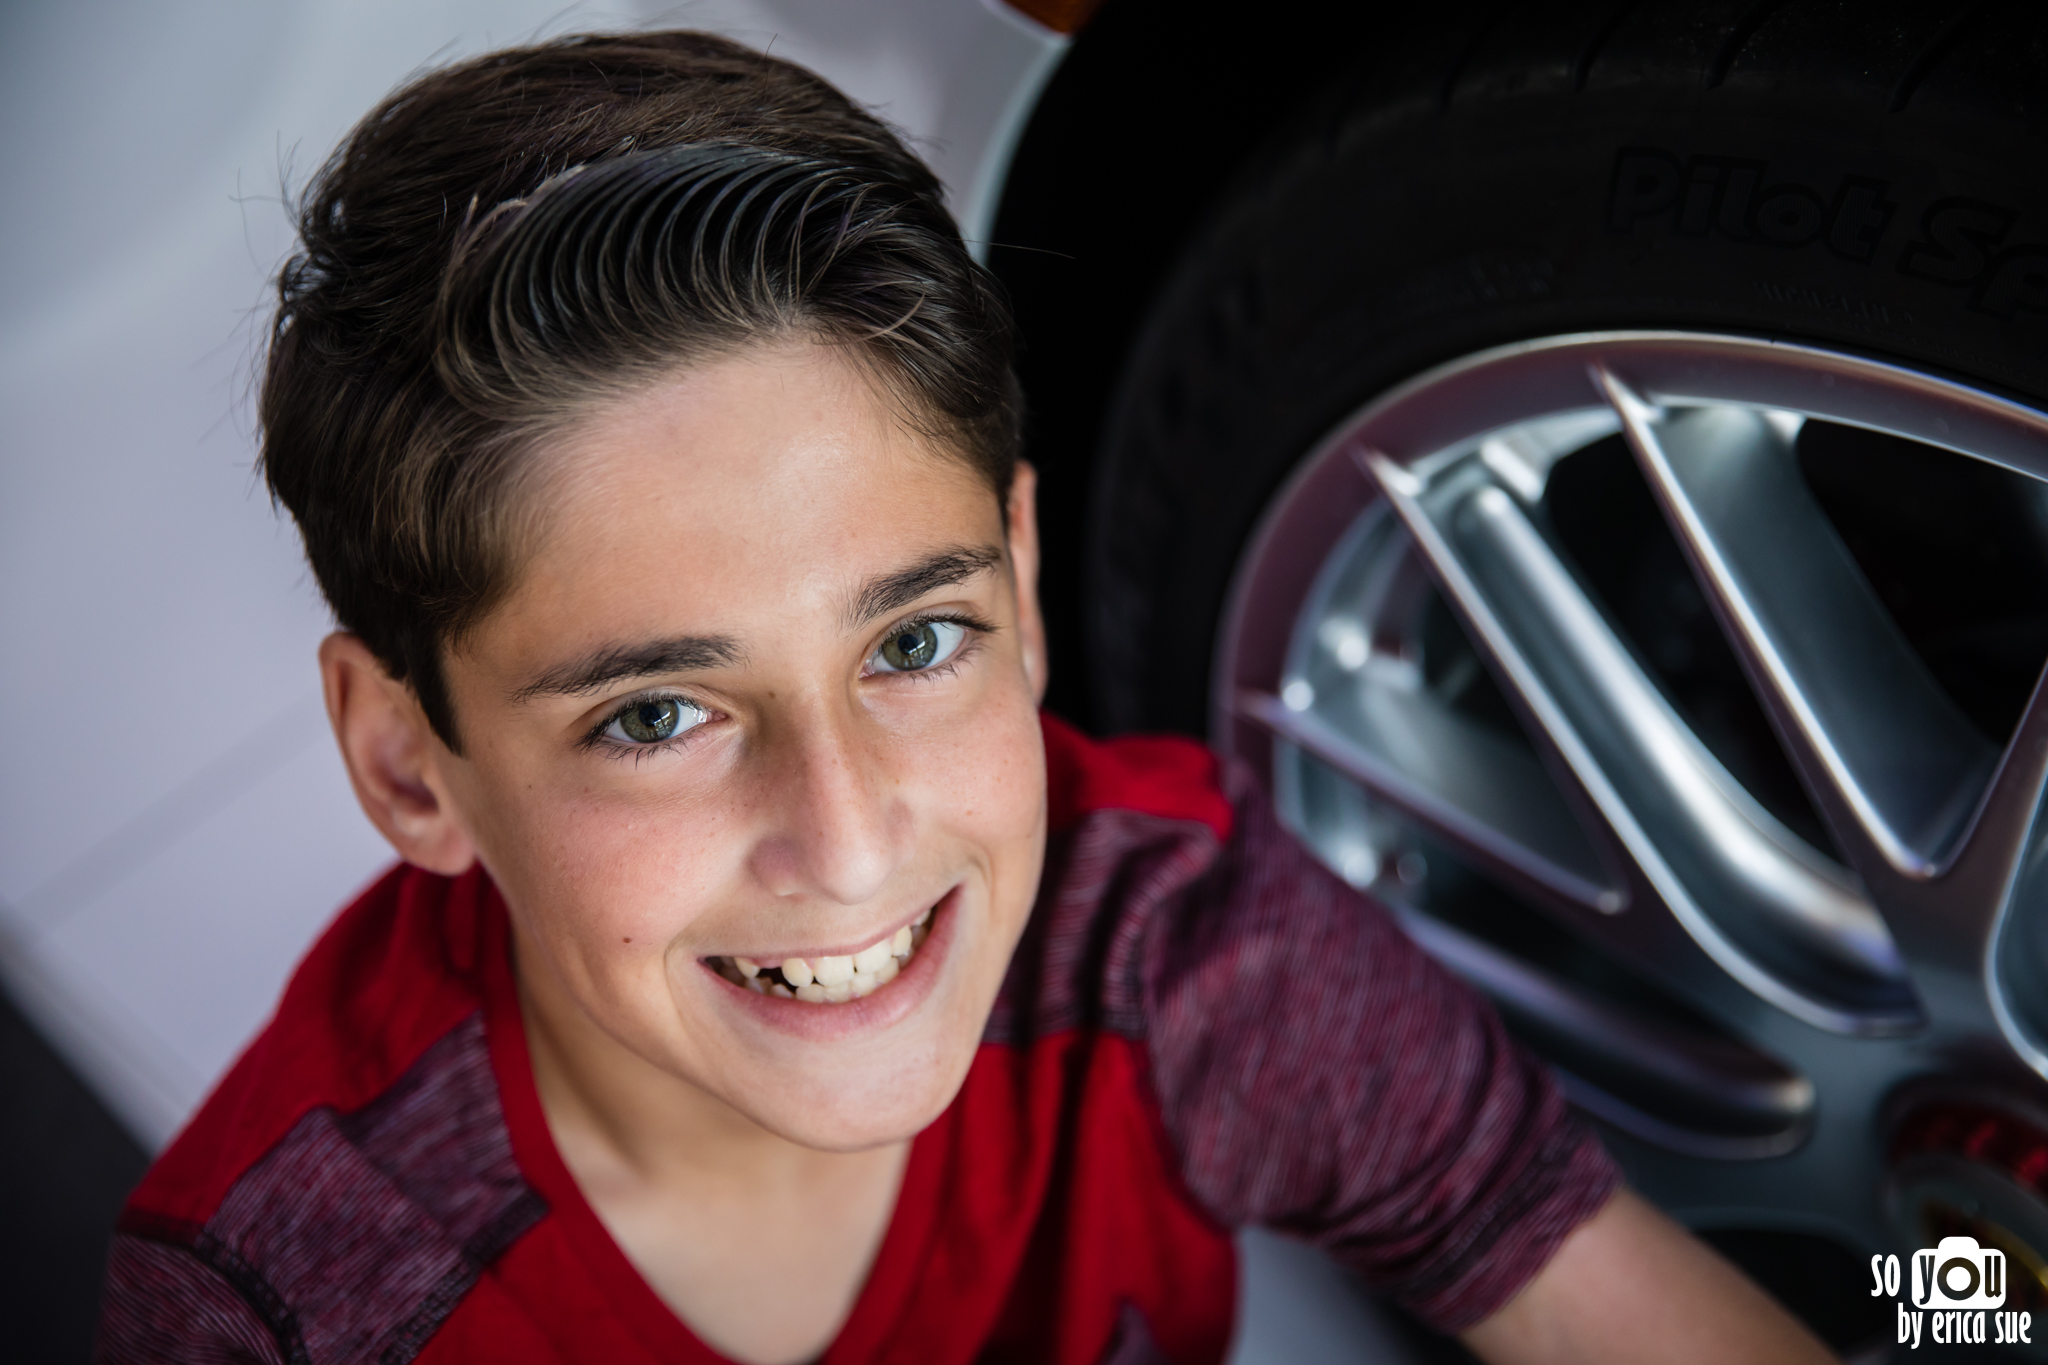 so-you-by-erica-sue-mitzvah-photographer-collection-luxury-car-ft-lauderdale-4857.jpg